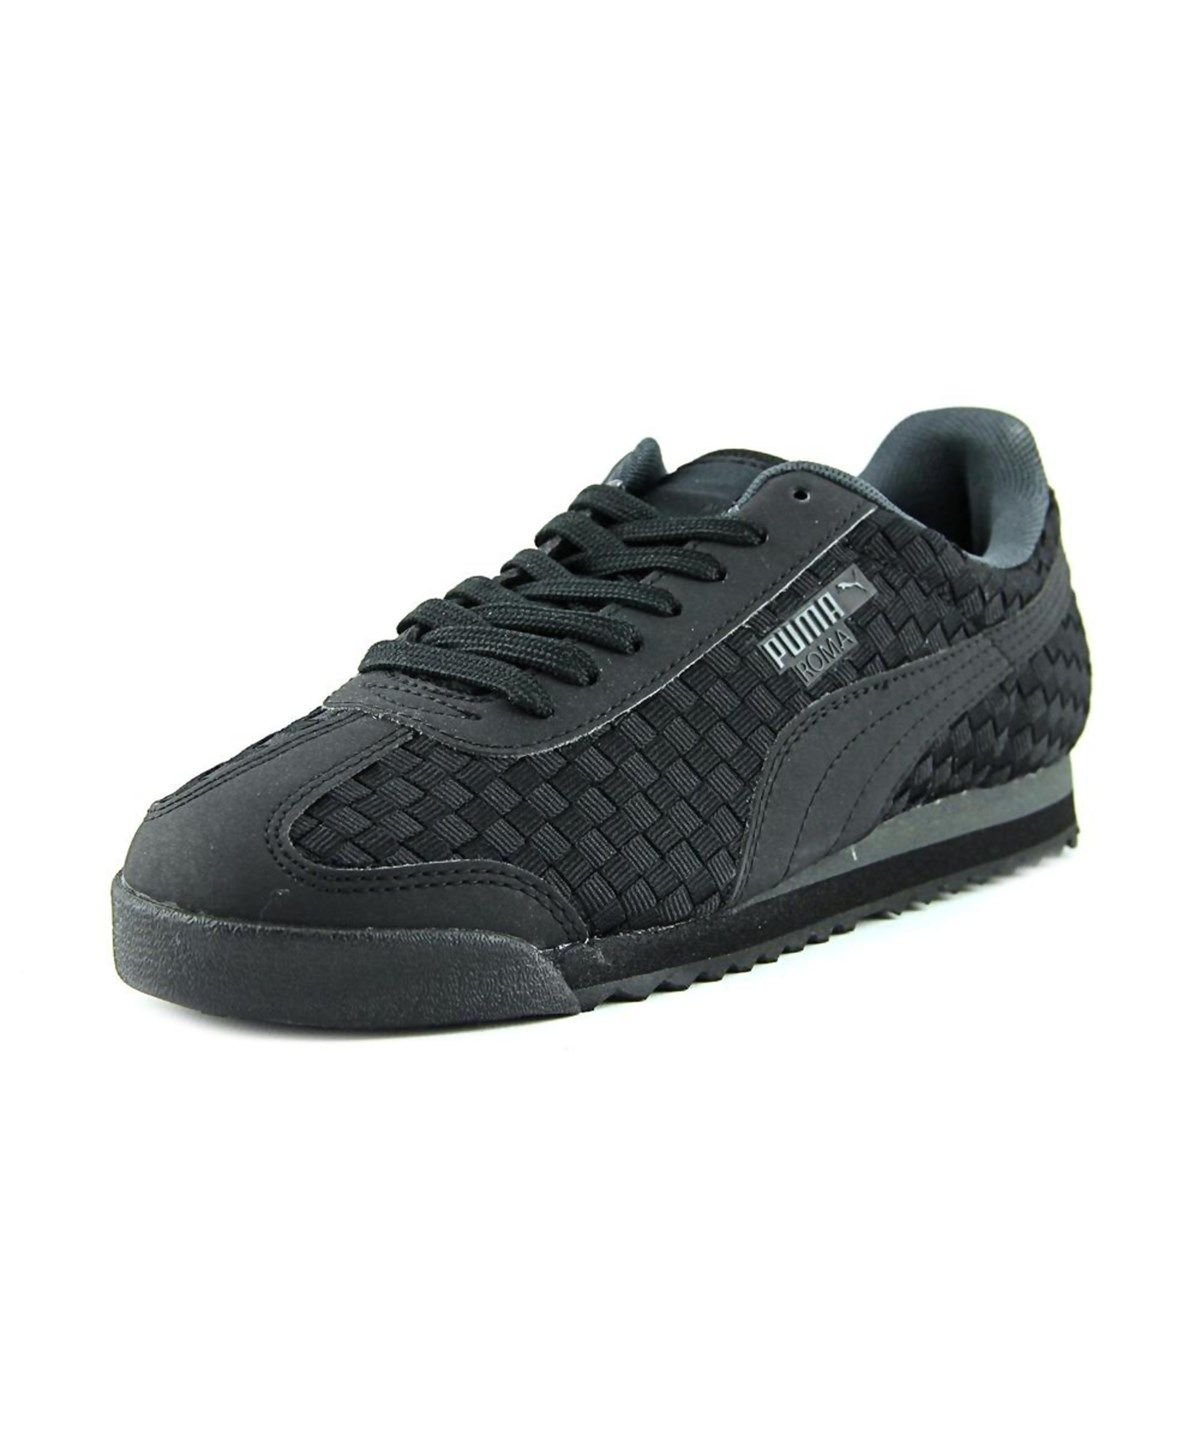 acef1586e32a7a PUMA Puma Roma Weave Men Round Toe Canvas Sneakers .  puma  shoes  sneakers